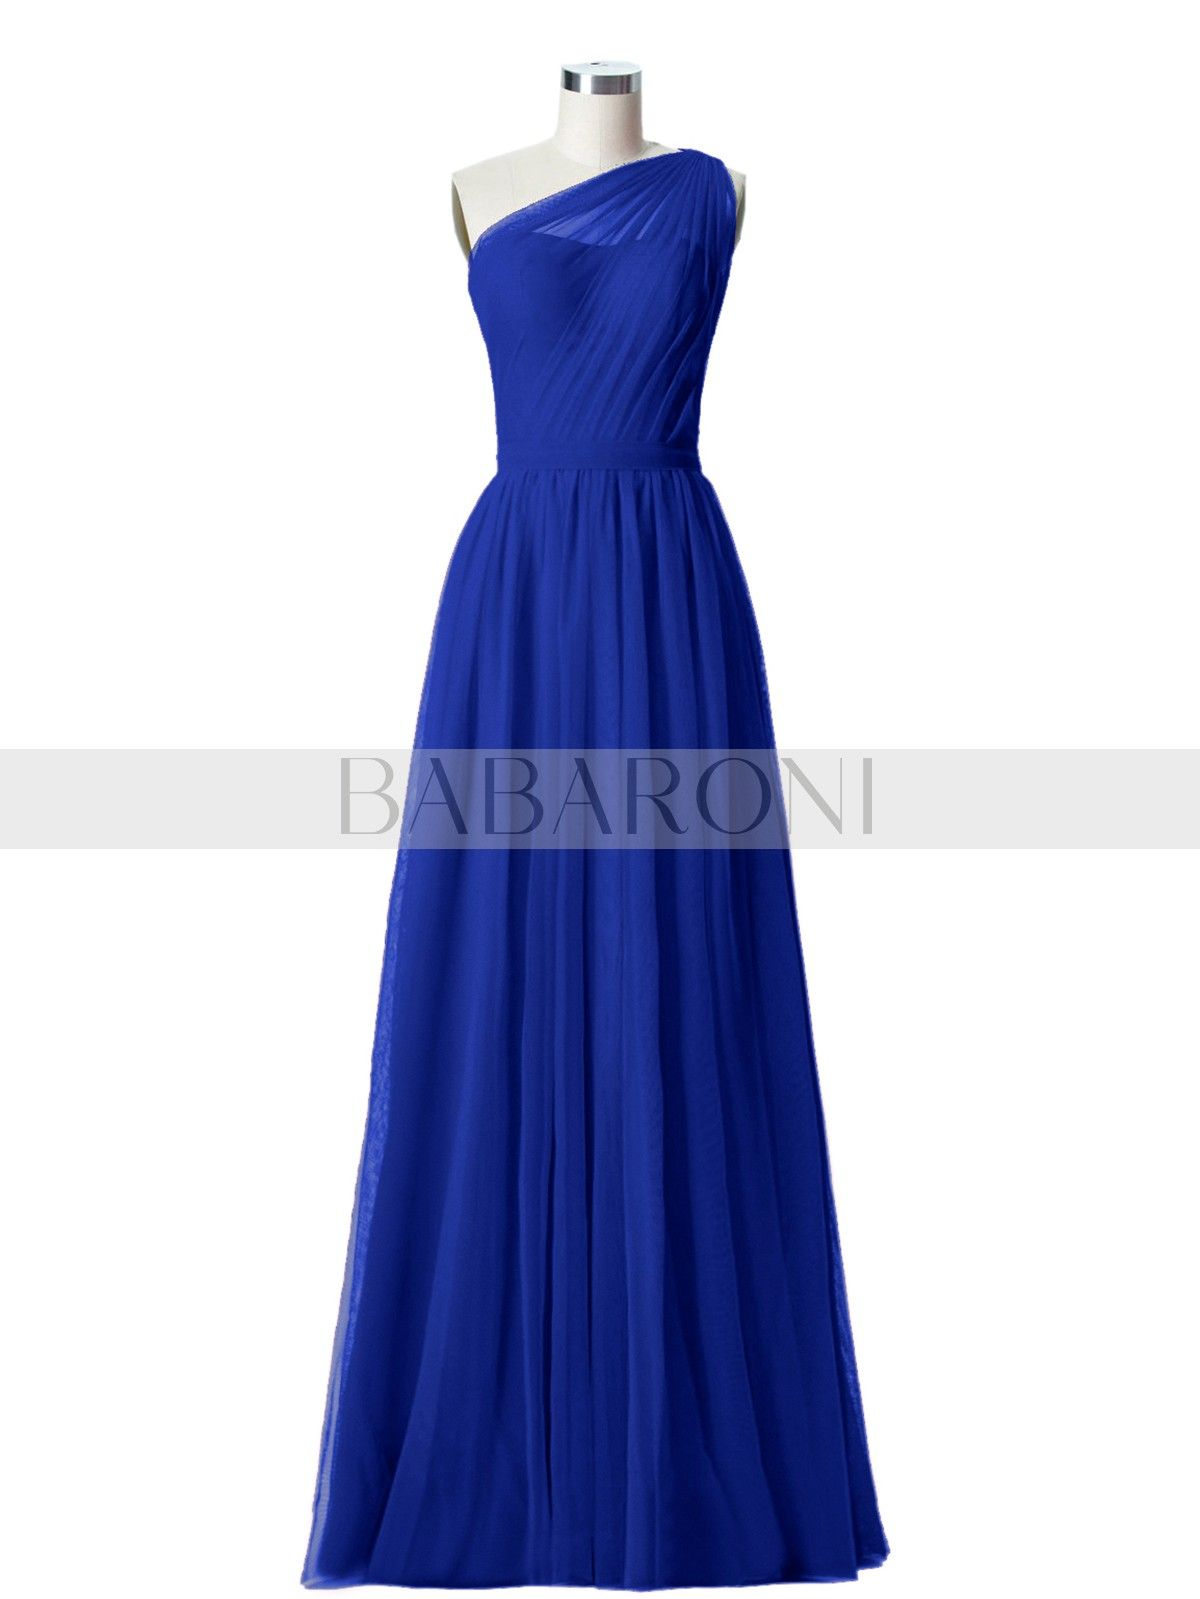 f9eb8a3ae2049 Babaroni Doris in 2019 | 3work out | Royal blue bridesmaid dresses, Bridesmaid  dresses long blue, Blue bridesmaid dresses